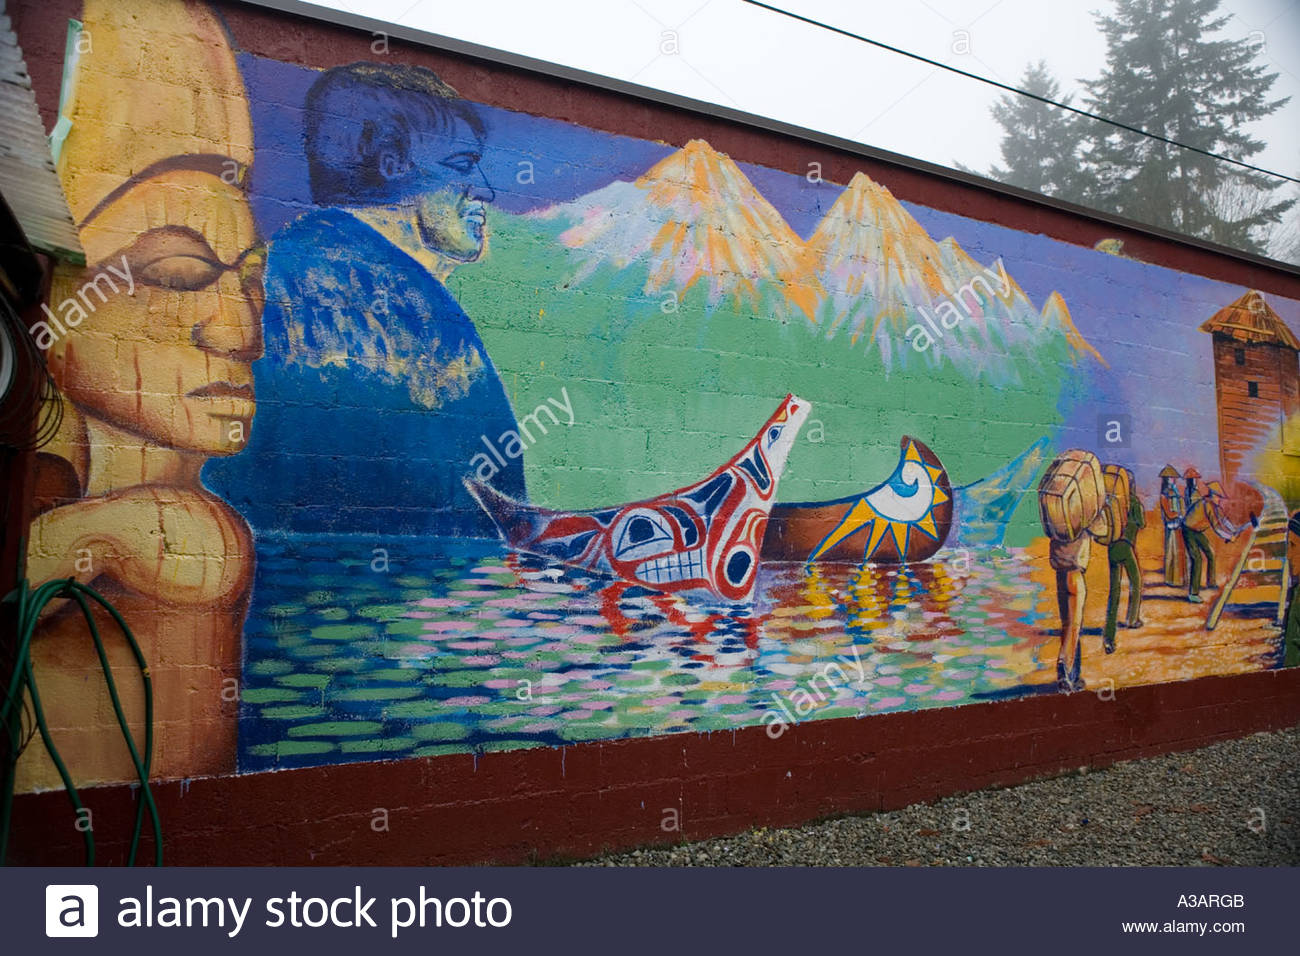 Large outdoor wall mural depicting historical events leading to the